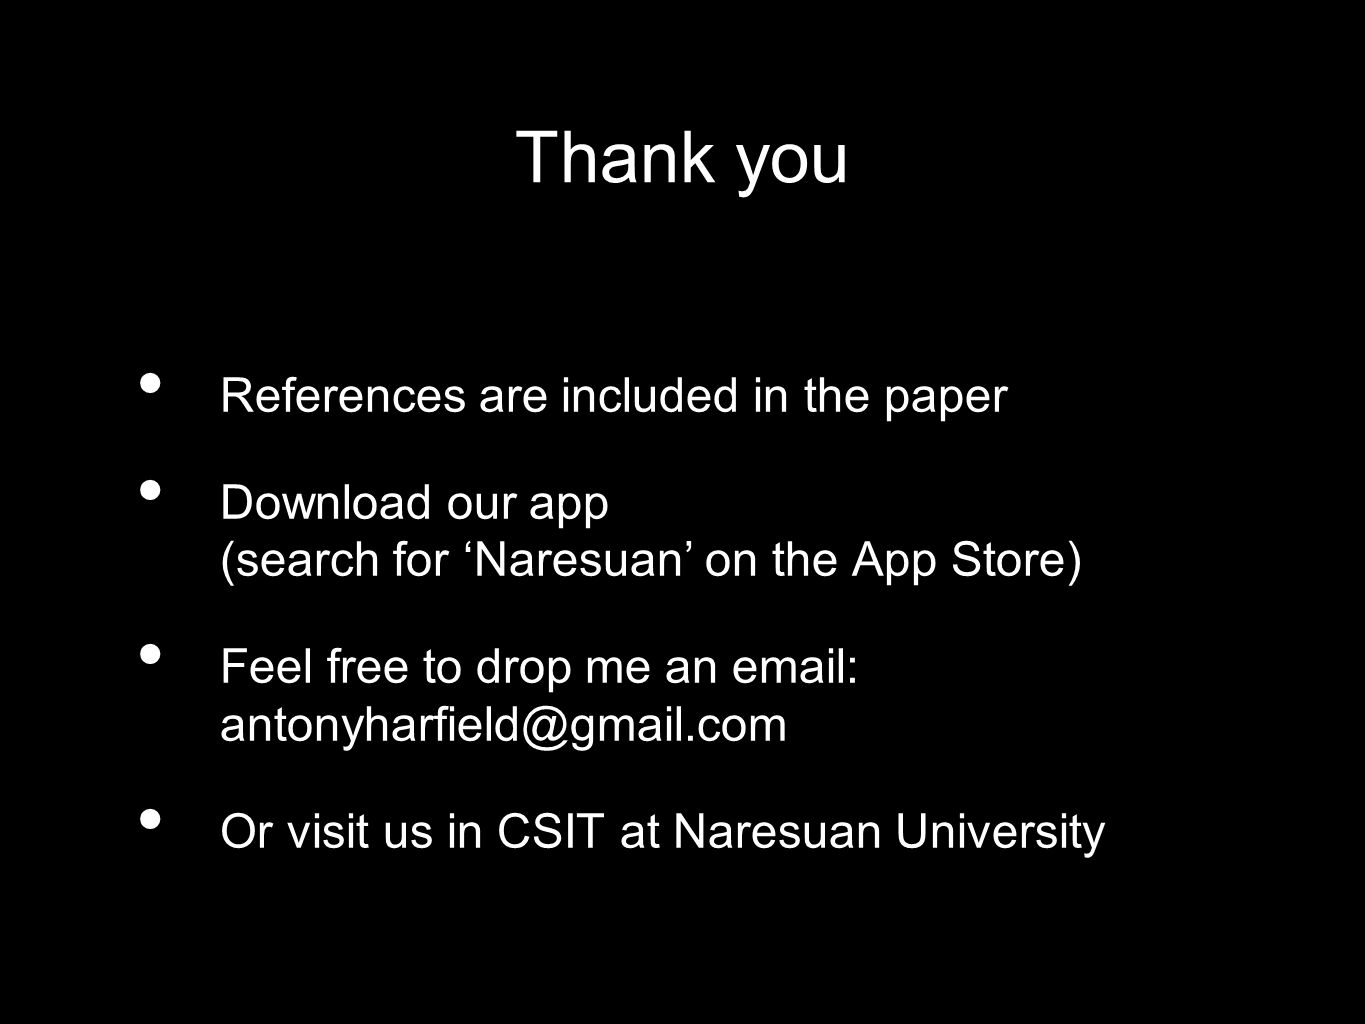 Thank you References are included in the paper Download our app (search for Naresuan on the App Store) Feel free to drop me an email: antonyharfield@gmail.com Or visit us in CSIT at Naresuan University